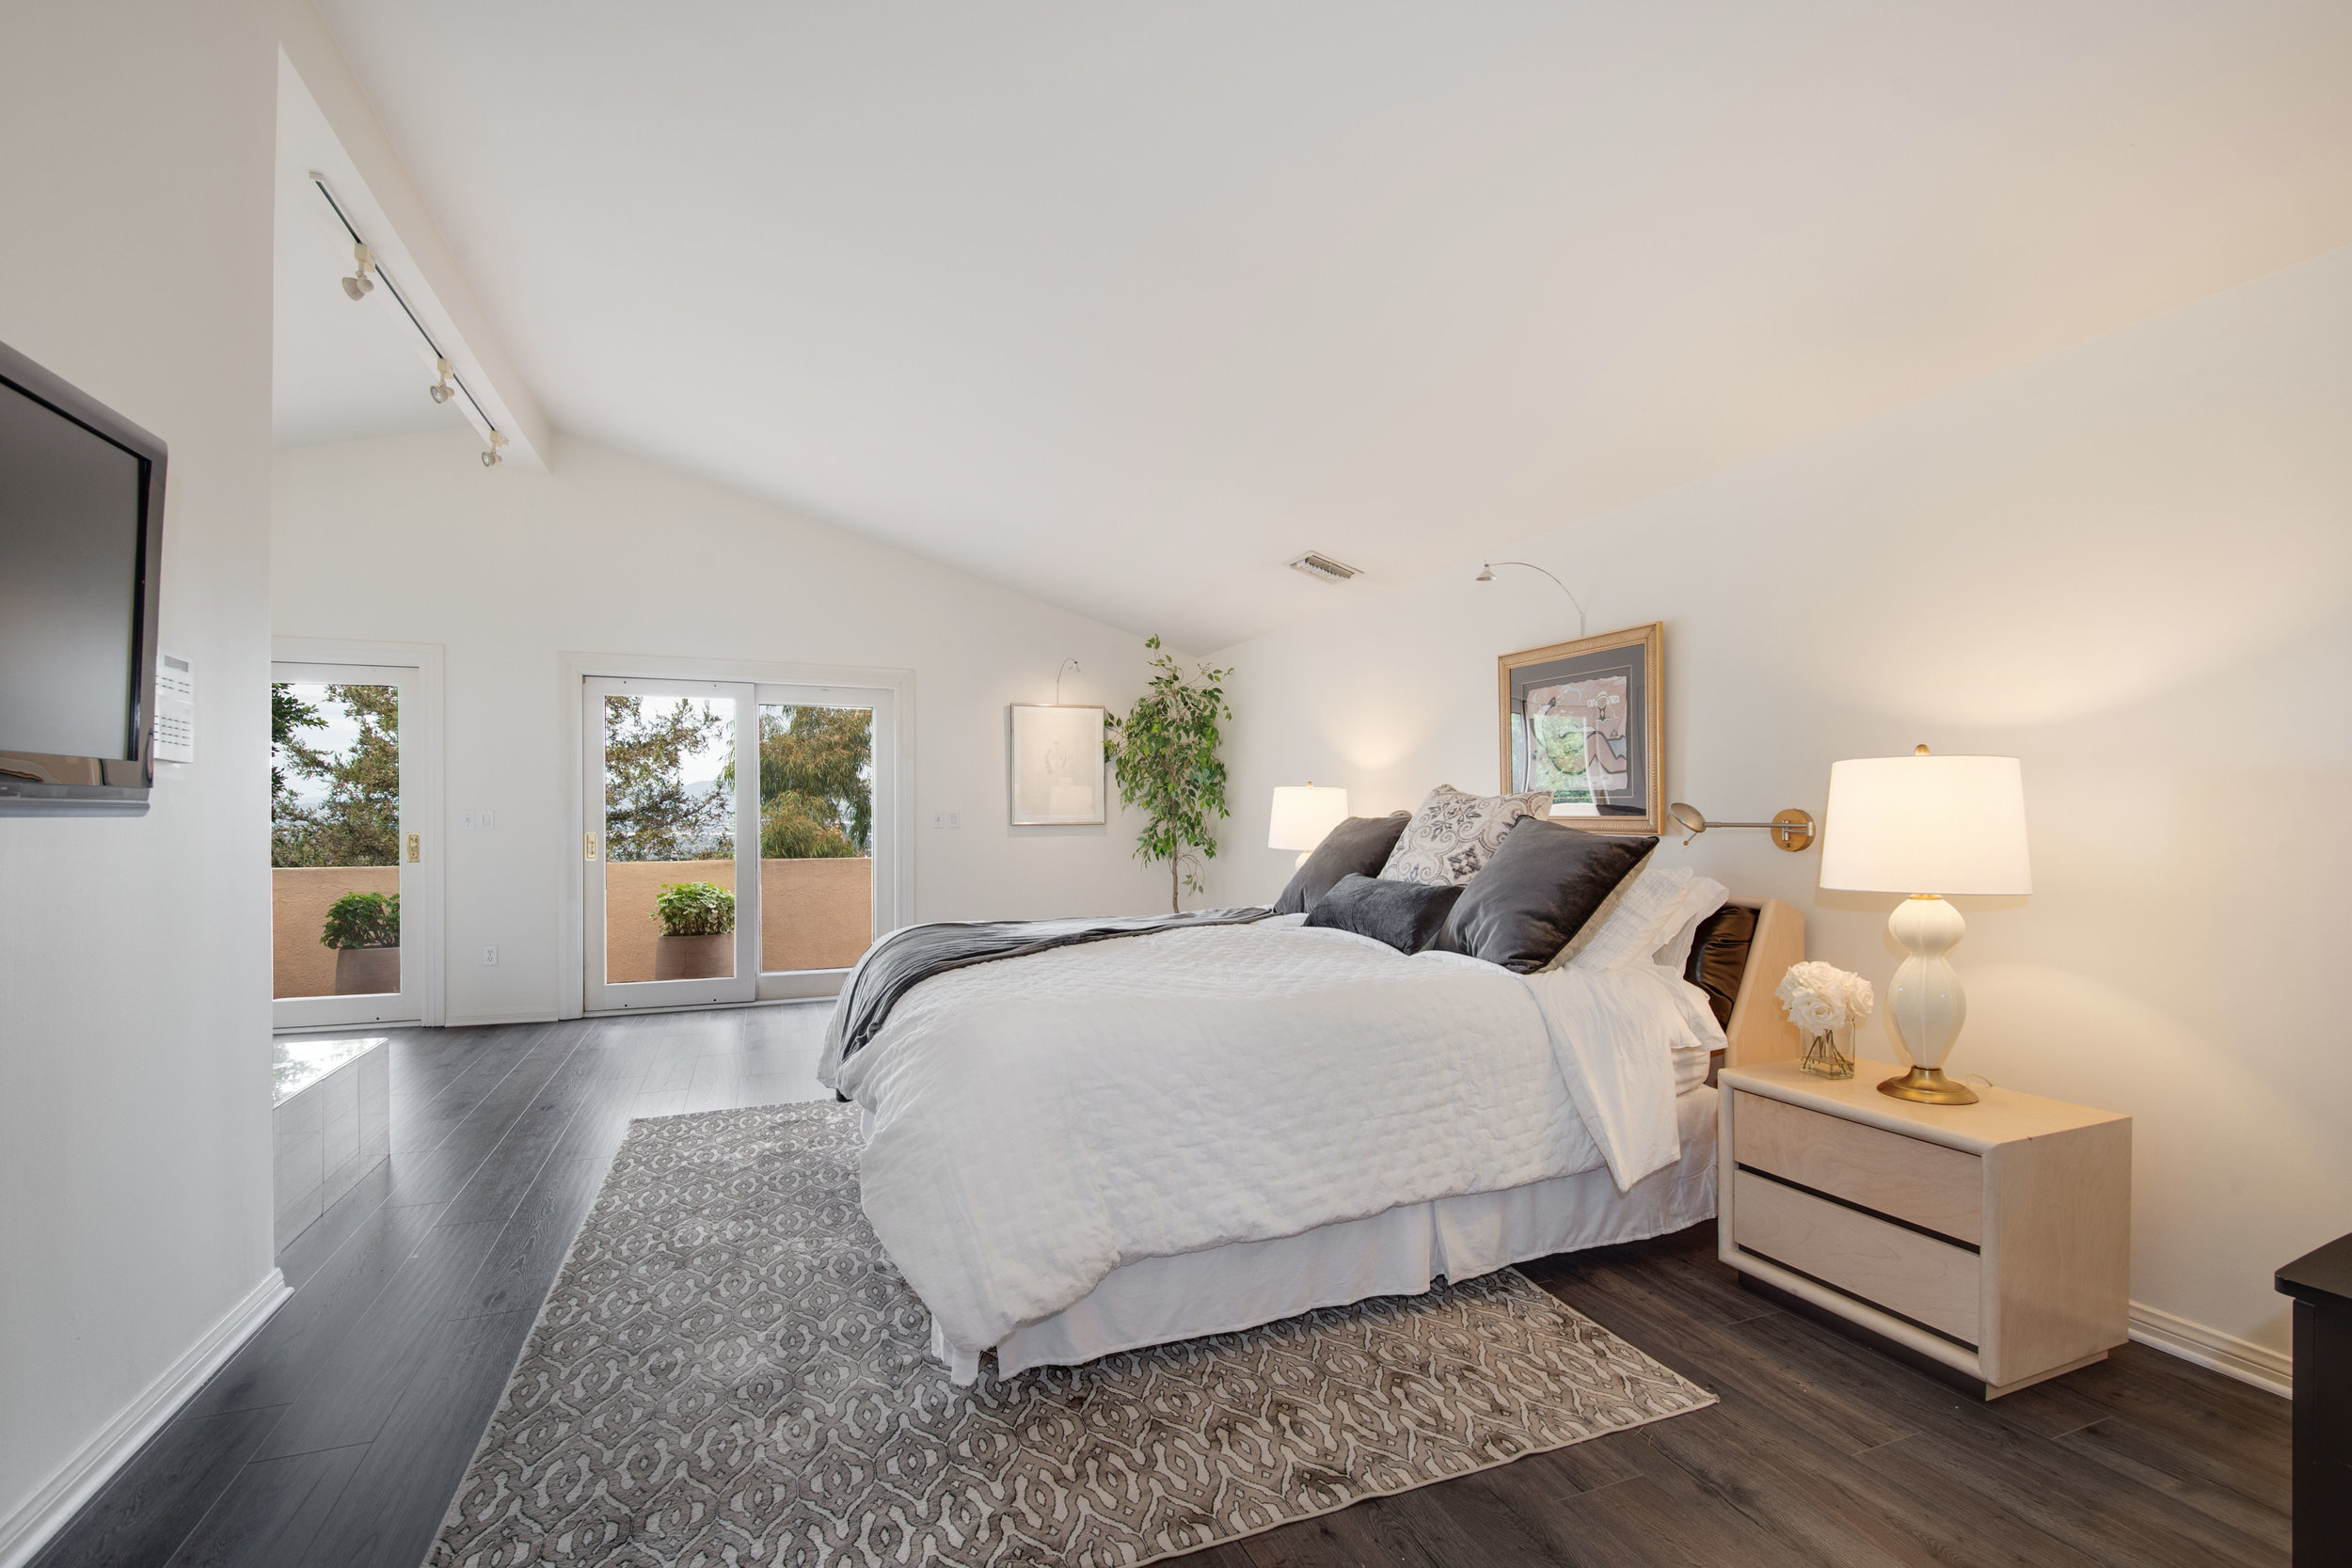 014 Master Bedroom 12027 Talus Place Beverly Hills 90210 For Sale Lease The Malibu Life Team Luxury Real Estate.jpg